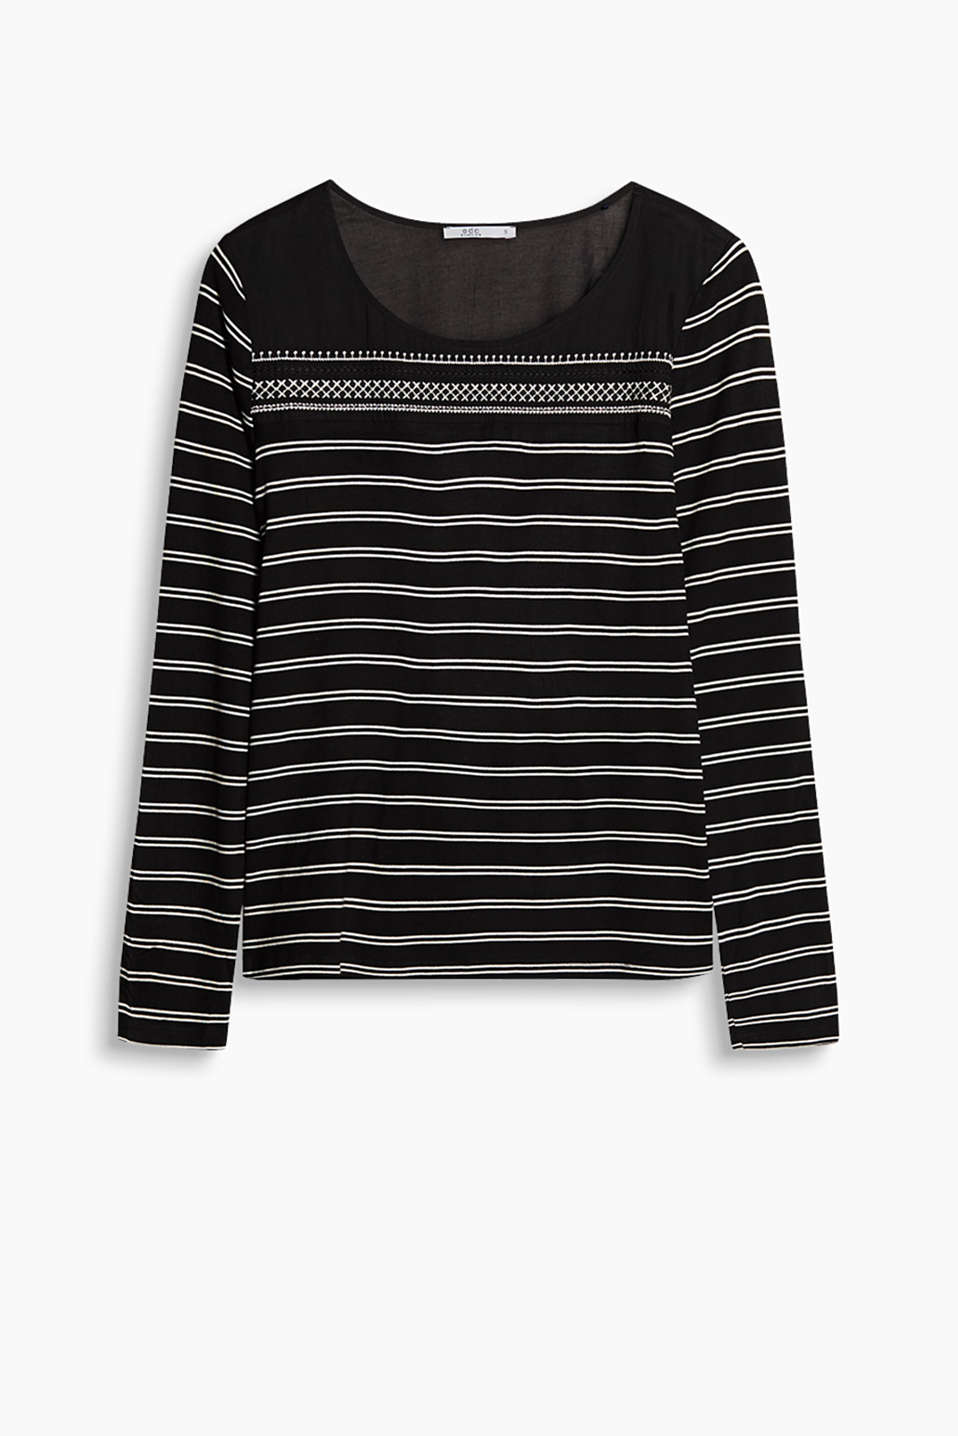 Classic stripes done differently: This flowing long sleeve top with an embroidered fabric yoke